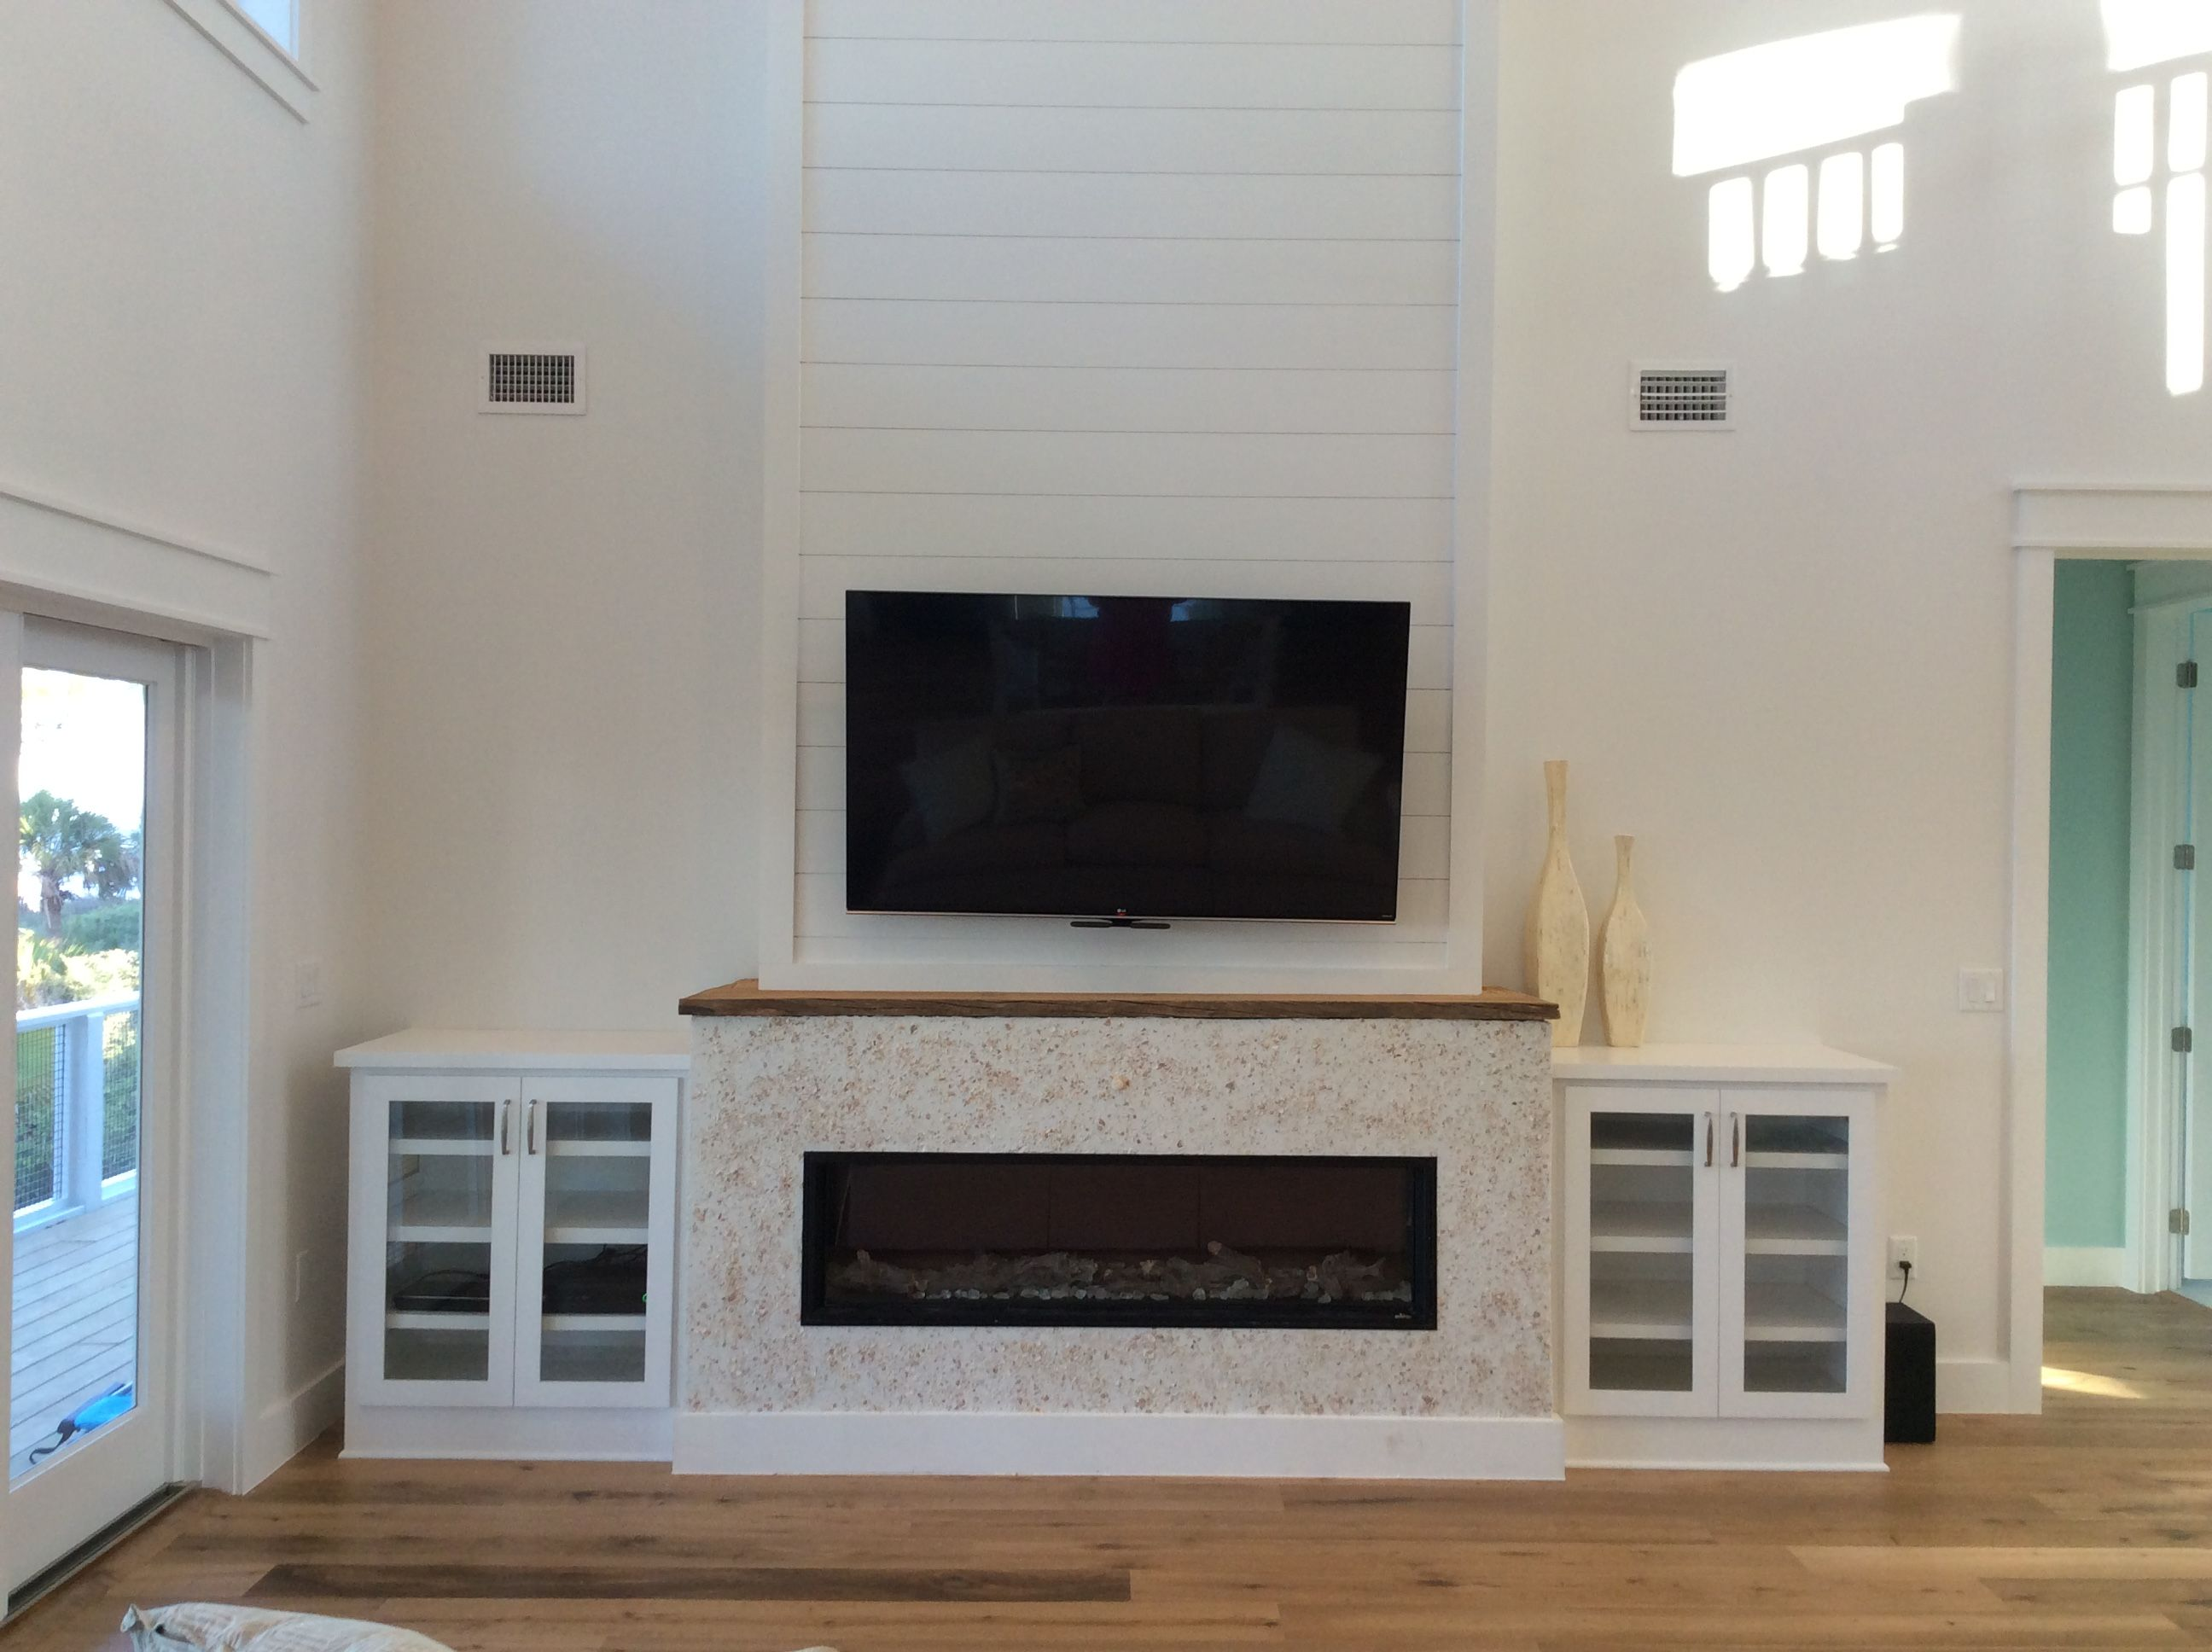 Image result for fireplace barn beam mantel tv above ...